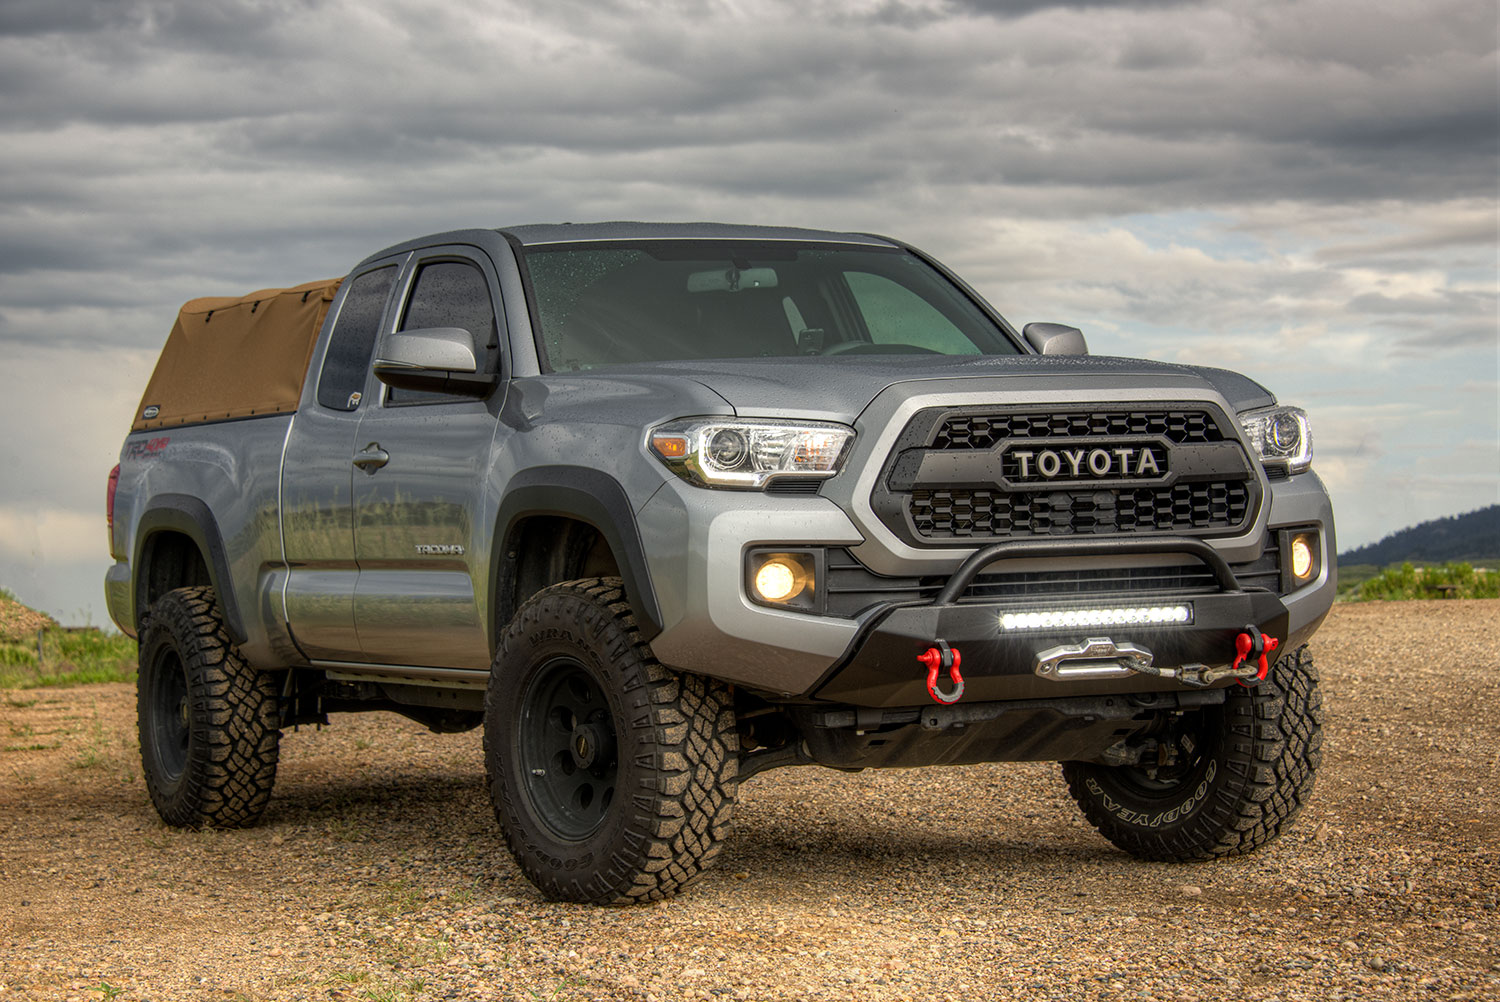 hight resolution of 3rd gen toyota tacoma overlander build photography truck 2019 toyota tacoma front end suspension diagram car interior design